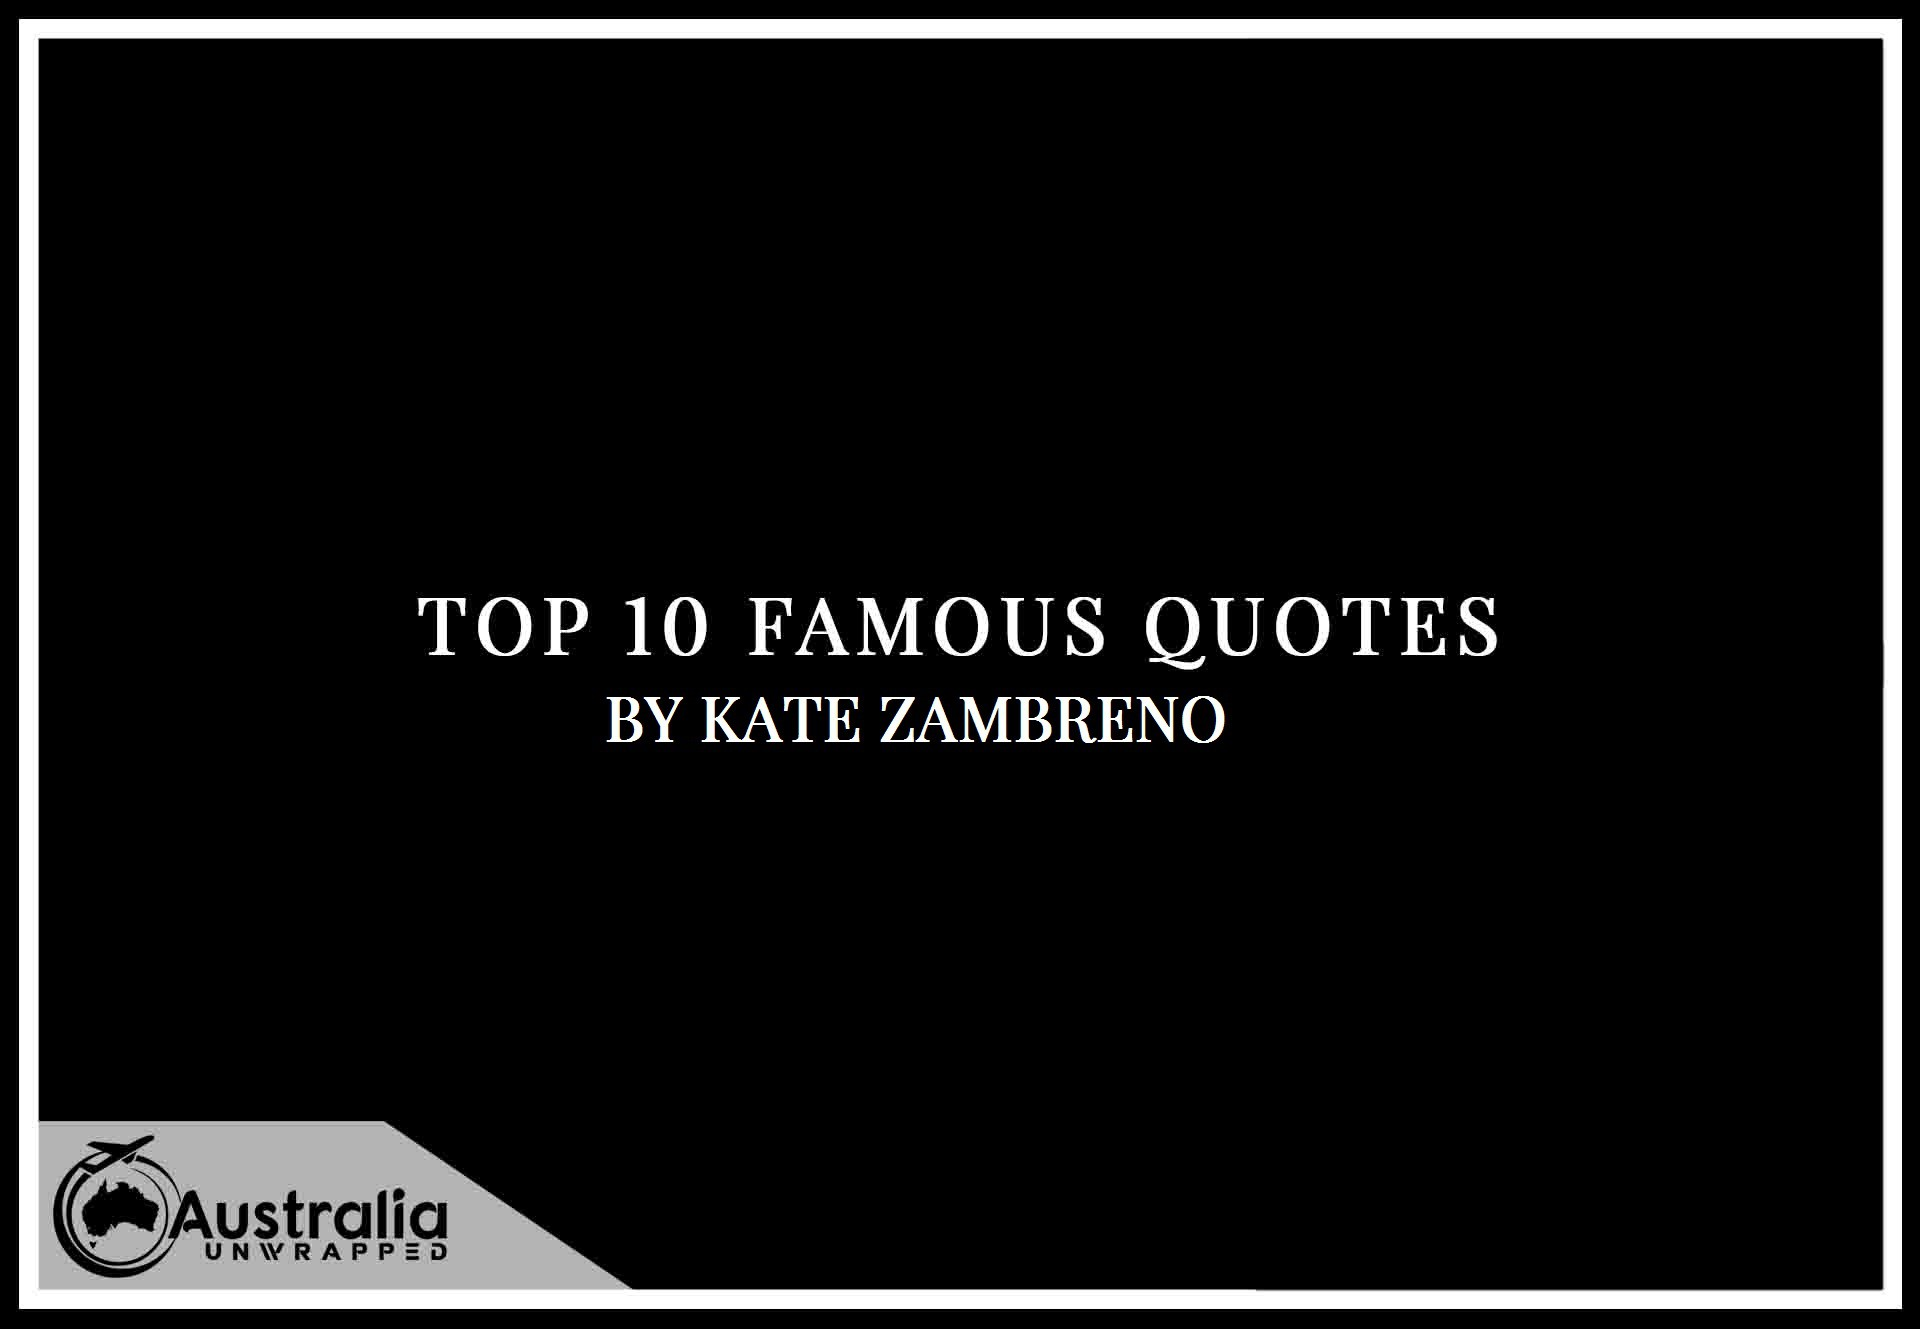 Kate Zambreno's Top 10 Popular and Famous Quotes